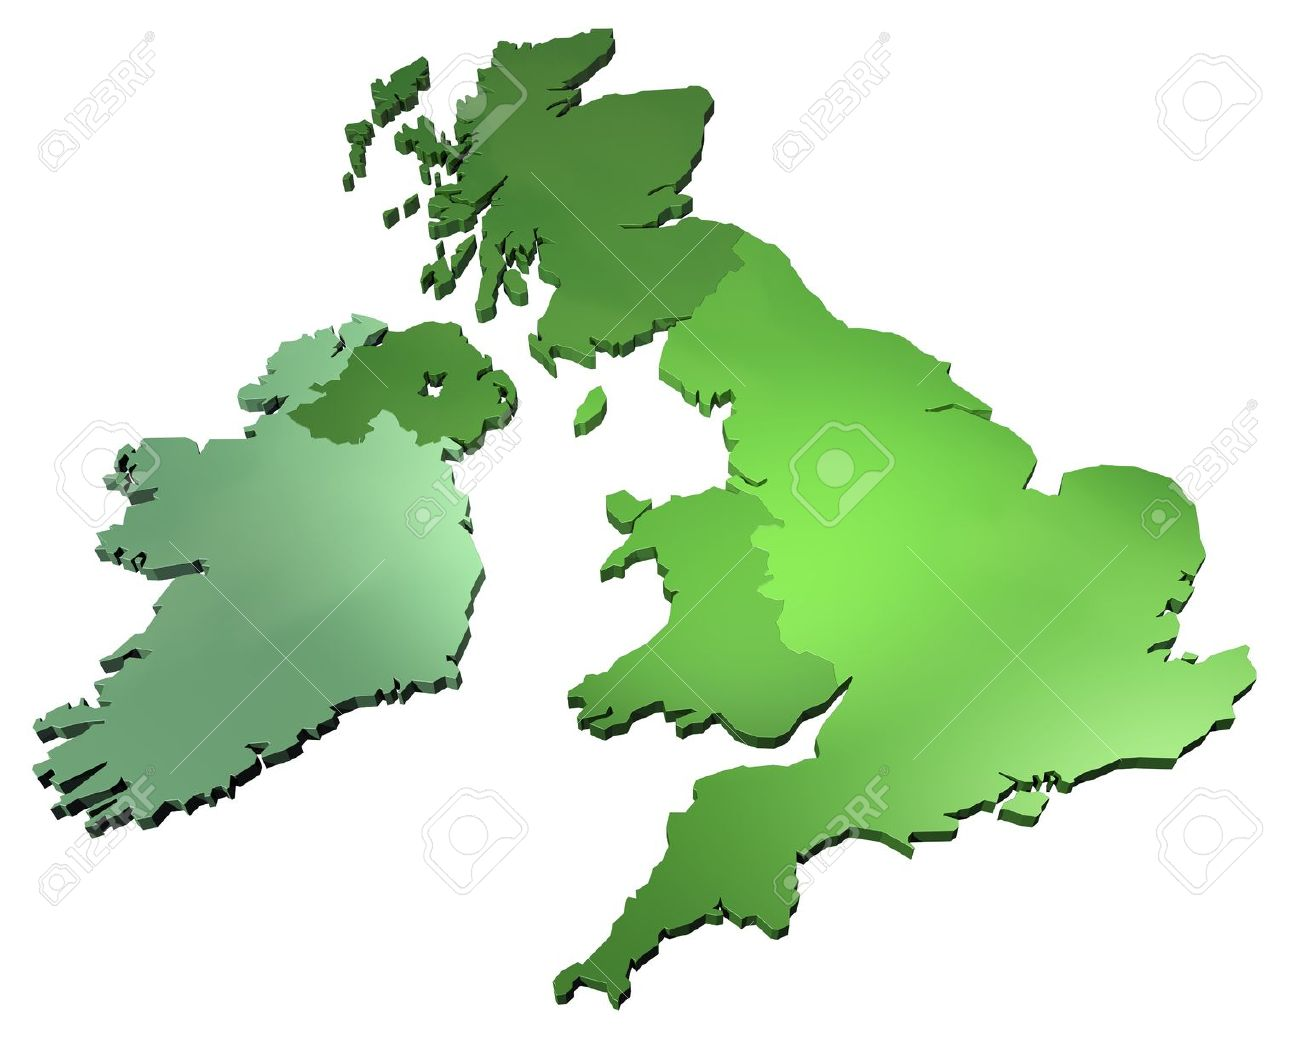 uk map outline images u0026 stock pictures royalty free uk map